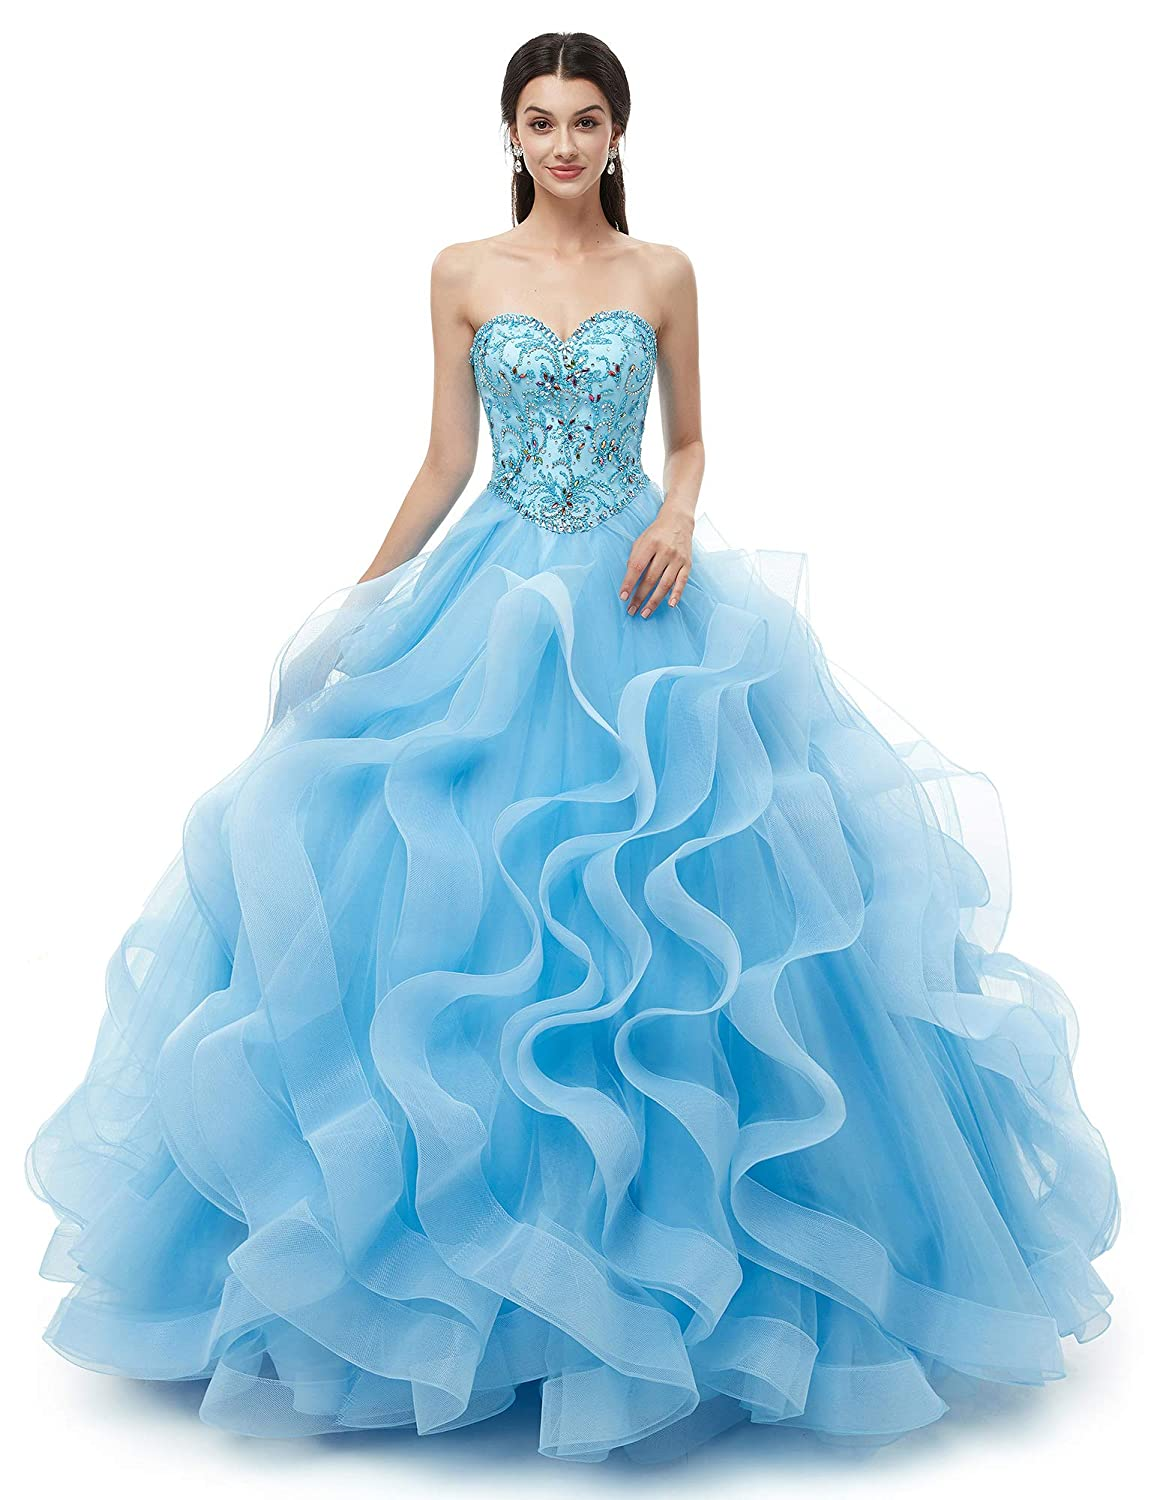 bluee ONLYCE A Line Sweetheart Ball Gown Beaded Floor Length Tulle Prom Dress